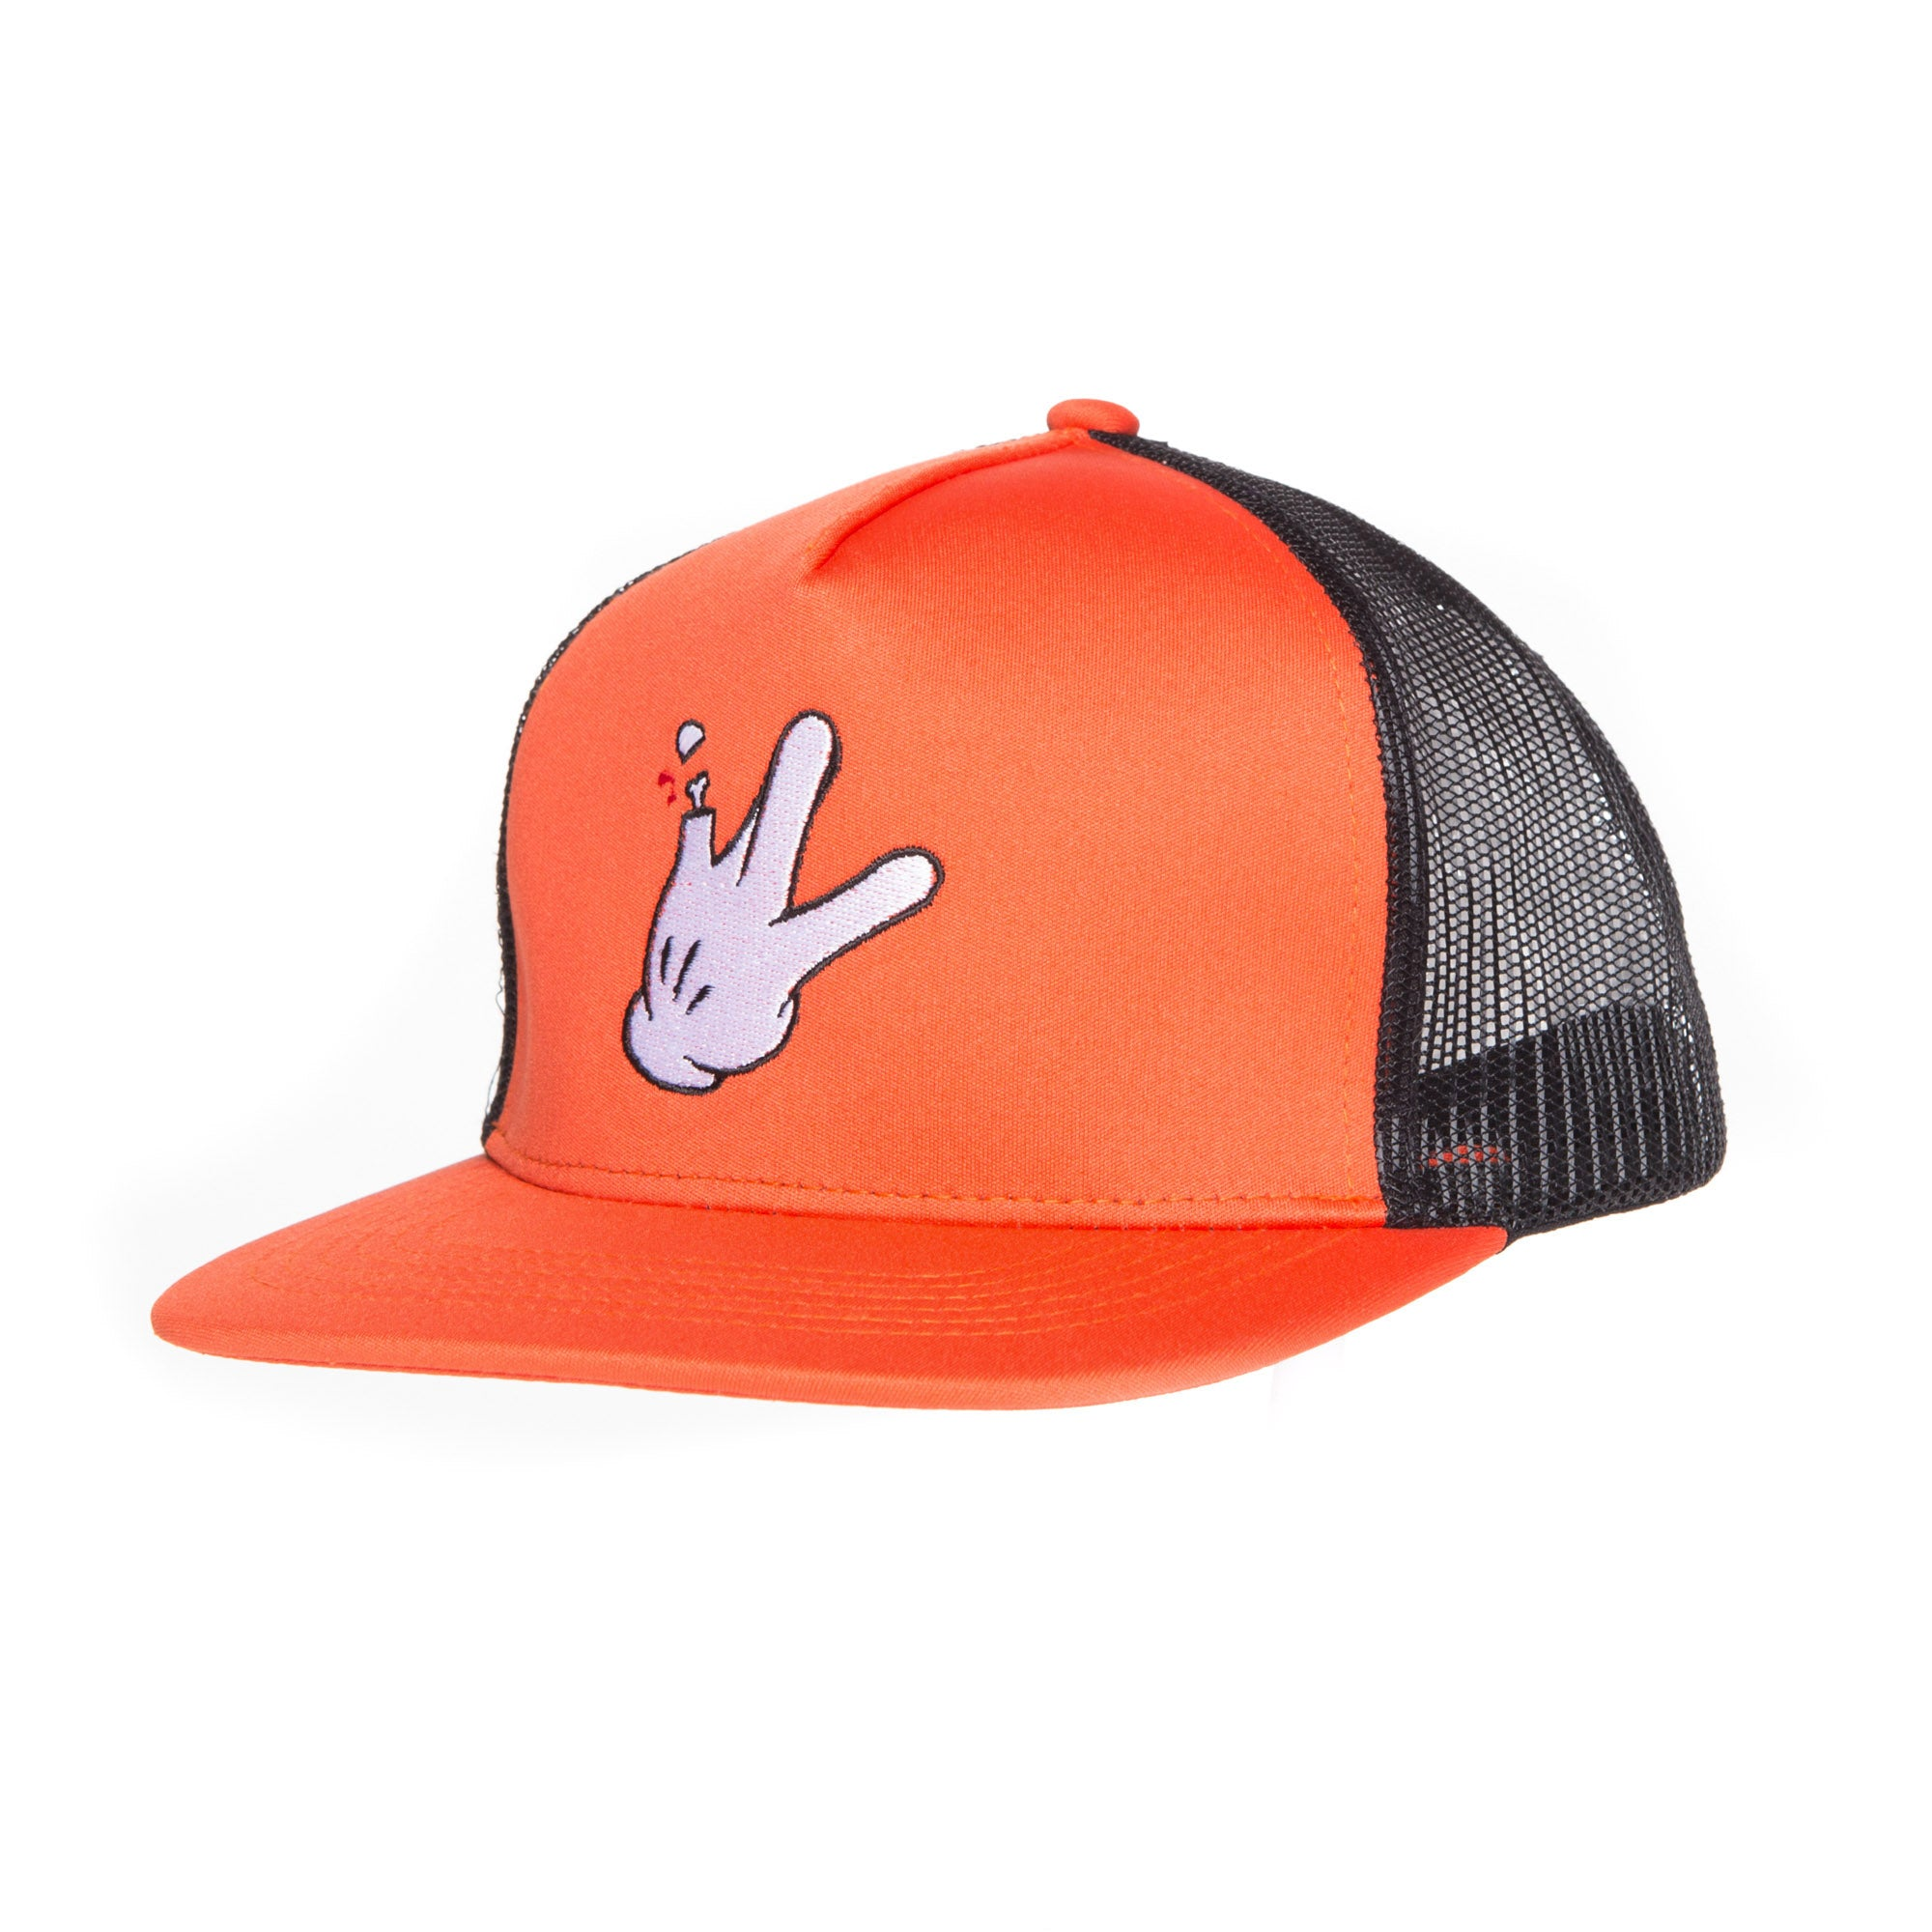 "Neon Orange Polyblend RaceKraft ""Glove"" Trucker Hat"